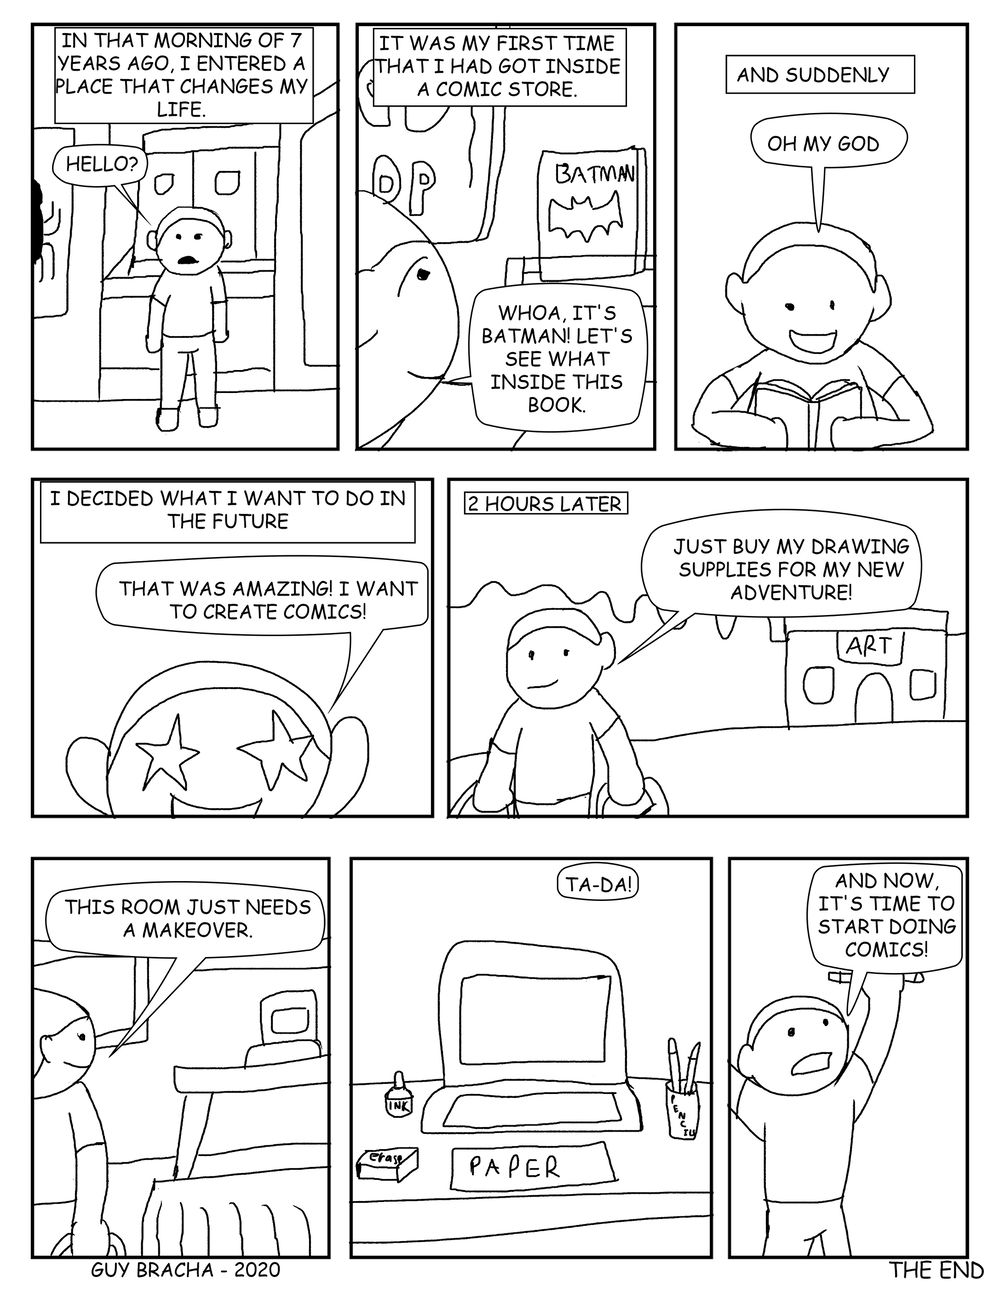 The day i start creating comics - image 2 - student project